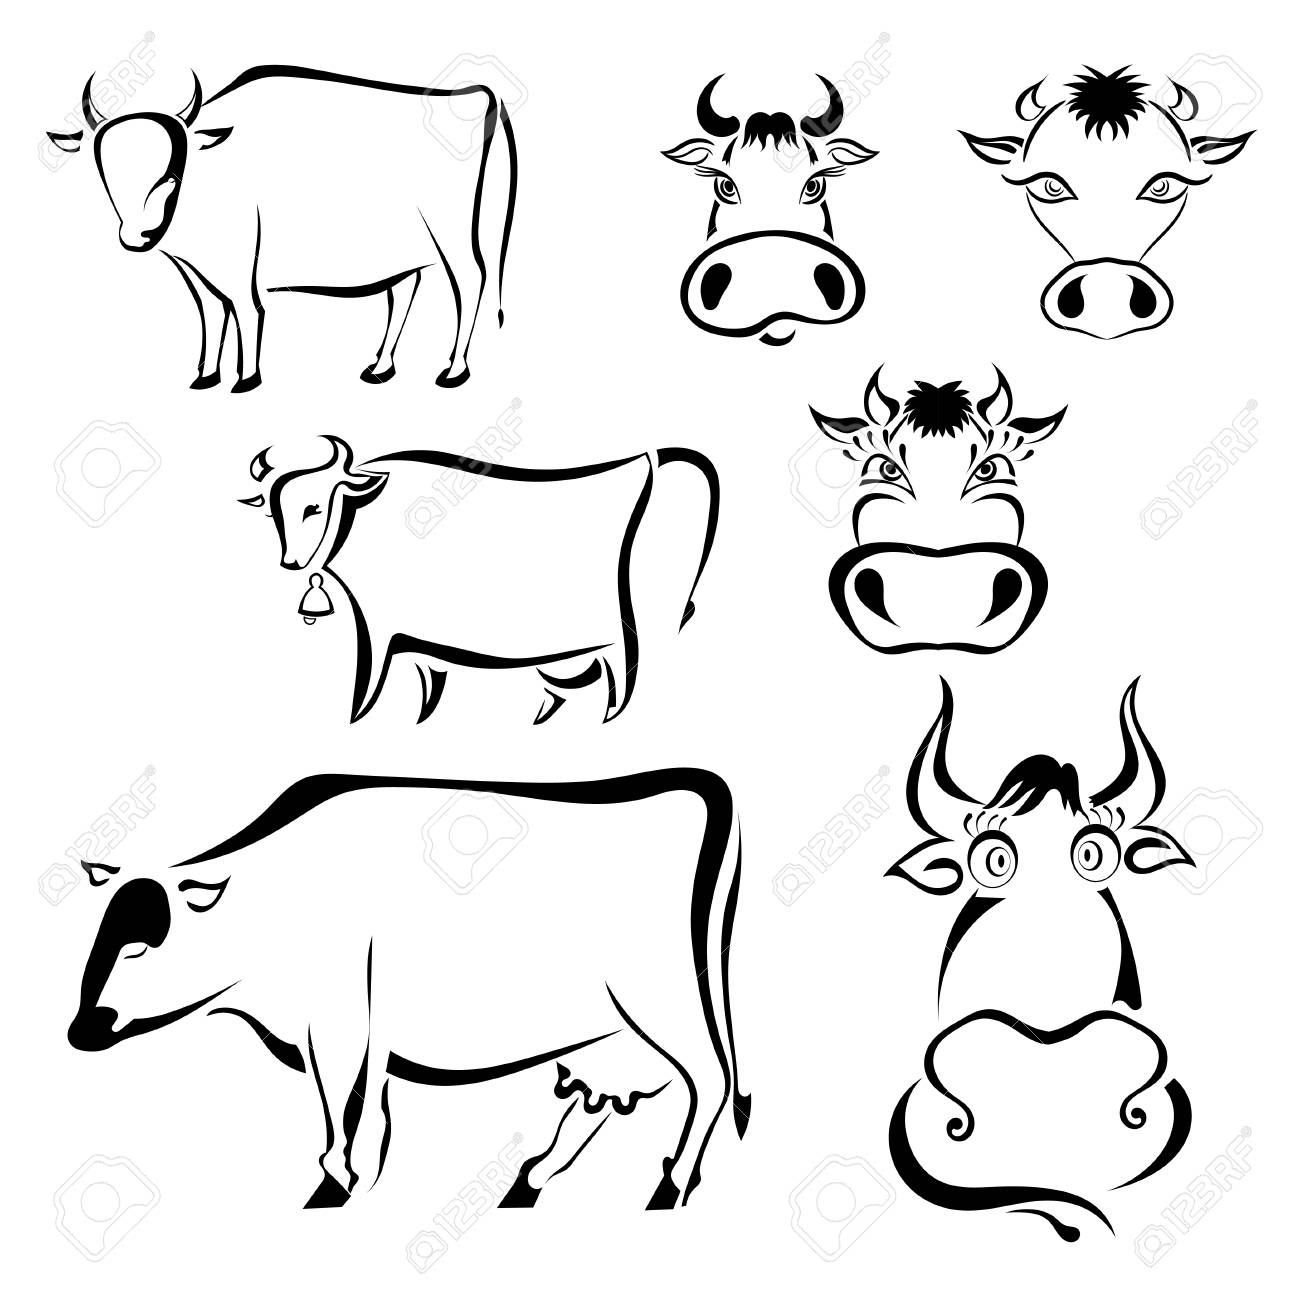 Set Of Black Graphic Images Cows On A White Background Abstract Drawings Milk